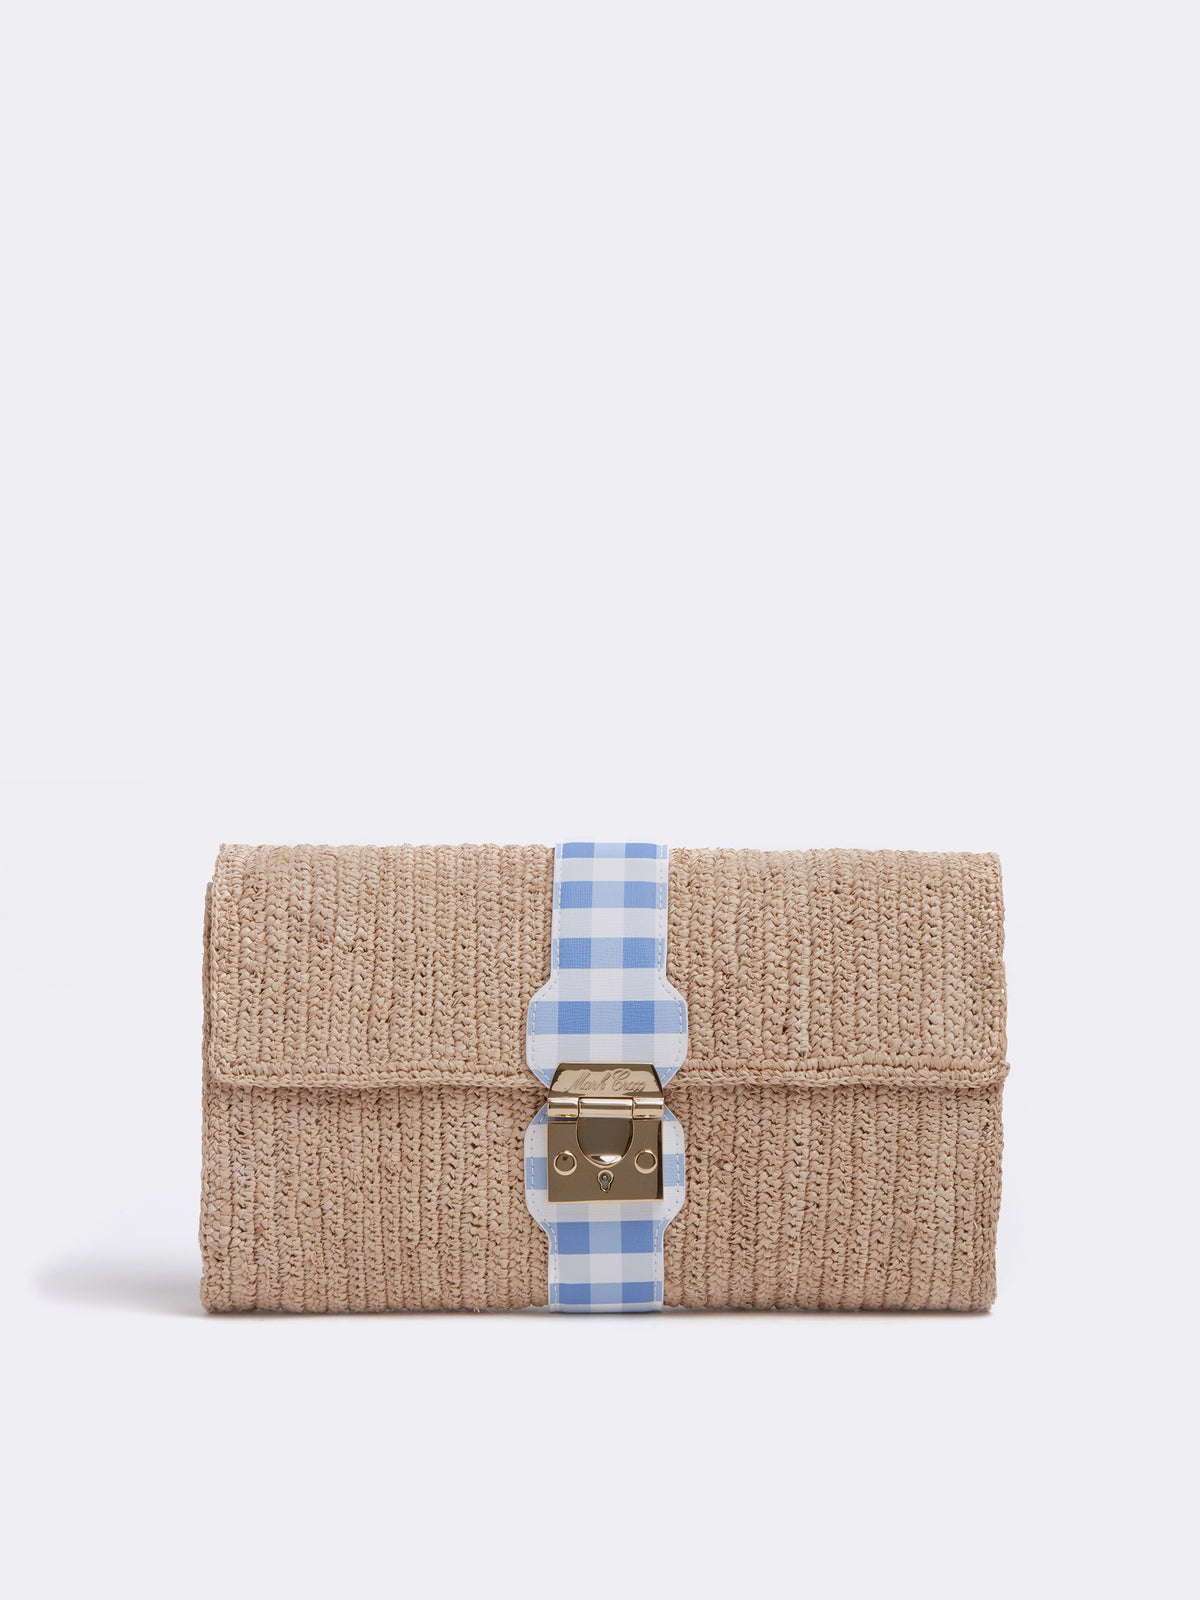 Mark Cross Sylvette Raffia & Leather Clutch Mini Franzi Gingham Regatta Blue / Natural Raffia Front